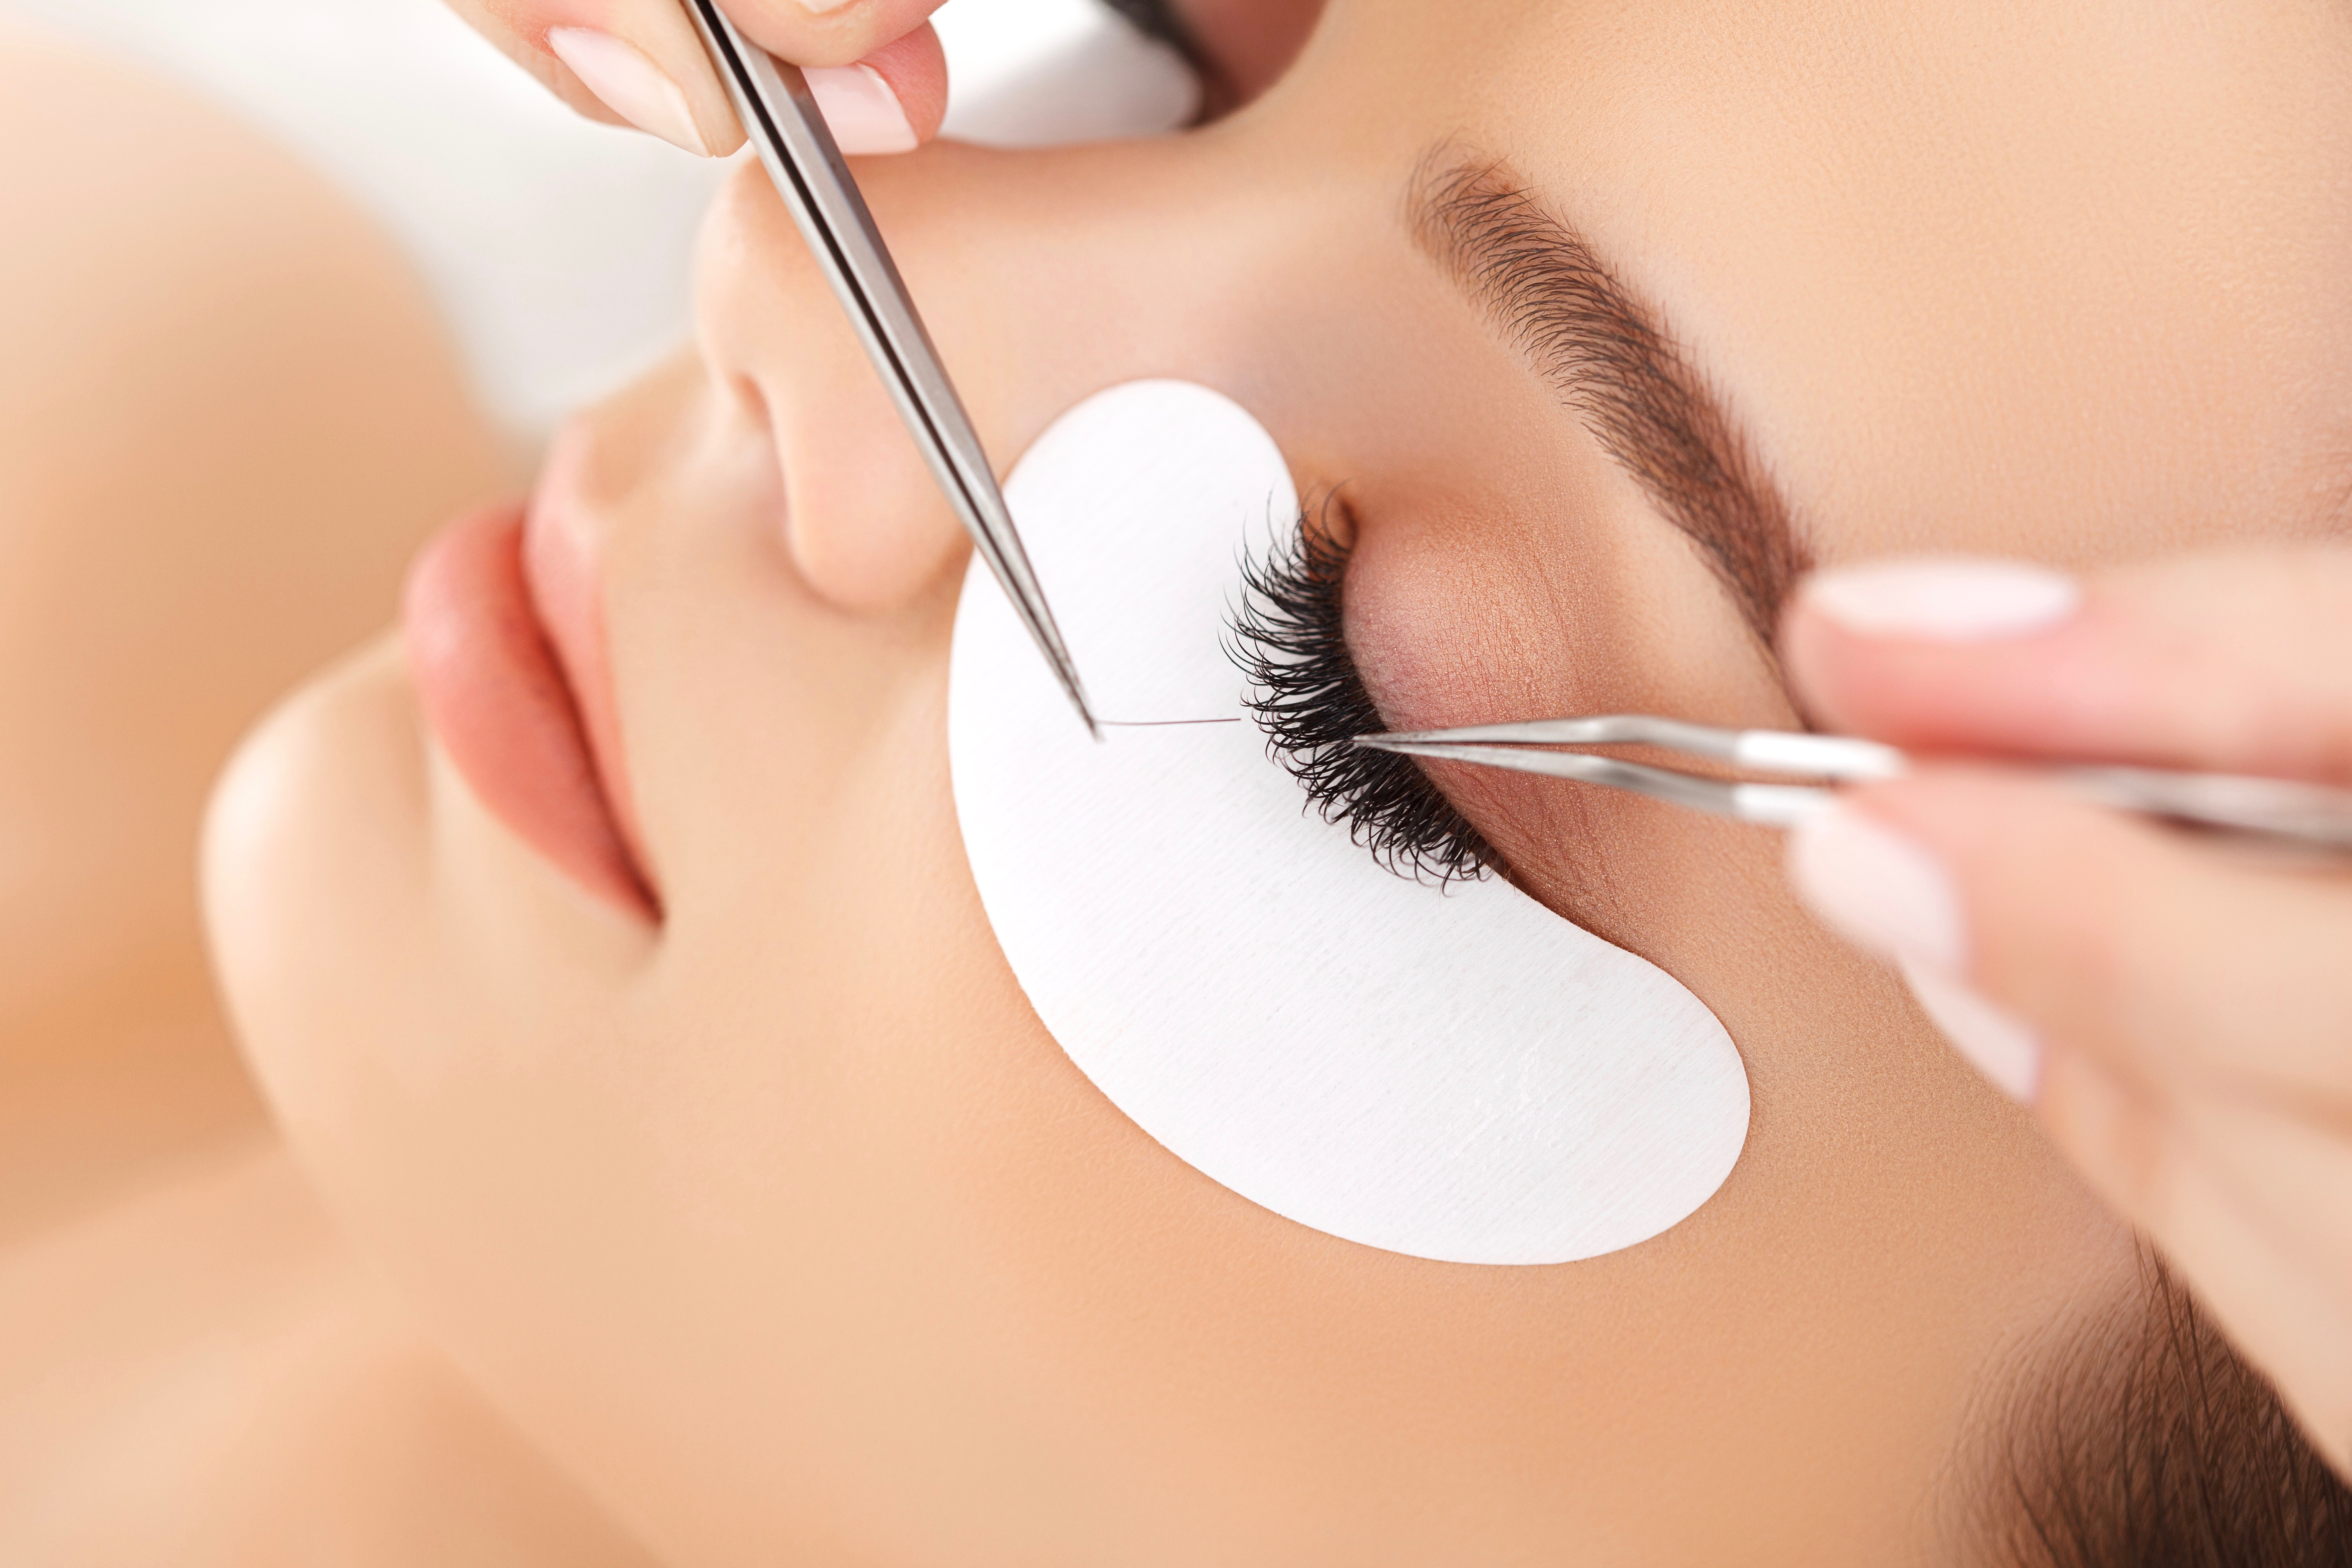 d11a9eb1dfe From sugaring to lip kits, gel manicures to waxing, we dish about the  latest lash extension trend.